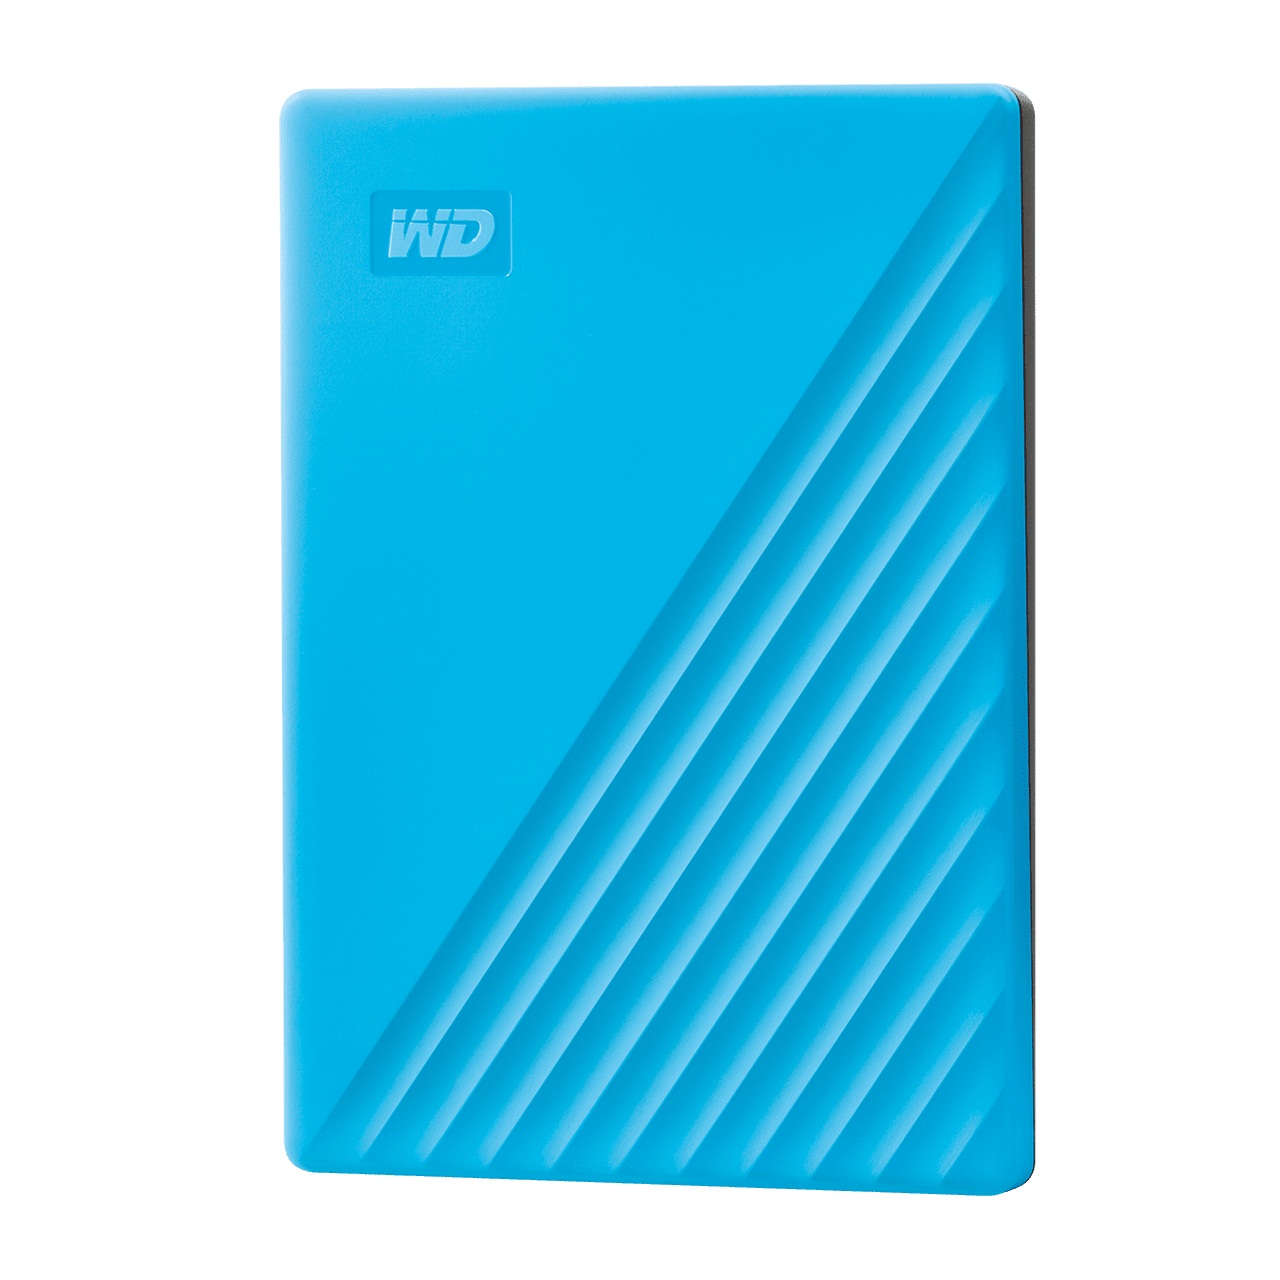 Western-Digital-WD-2TB-My-Passport-2020-3-2-Portable-Hard-Drive-HDD-All-Color-DI thumbnail 8